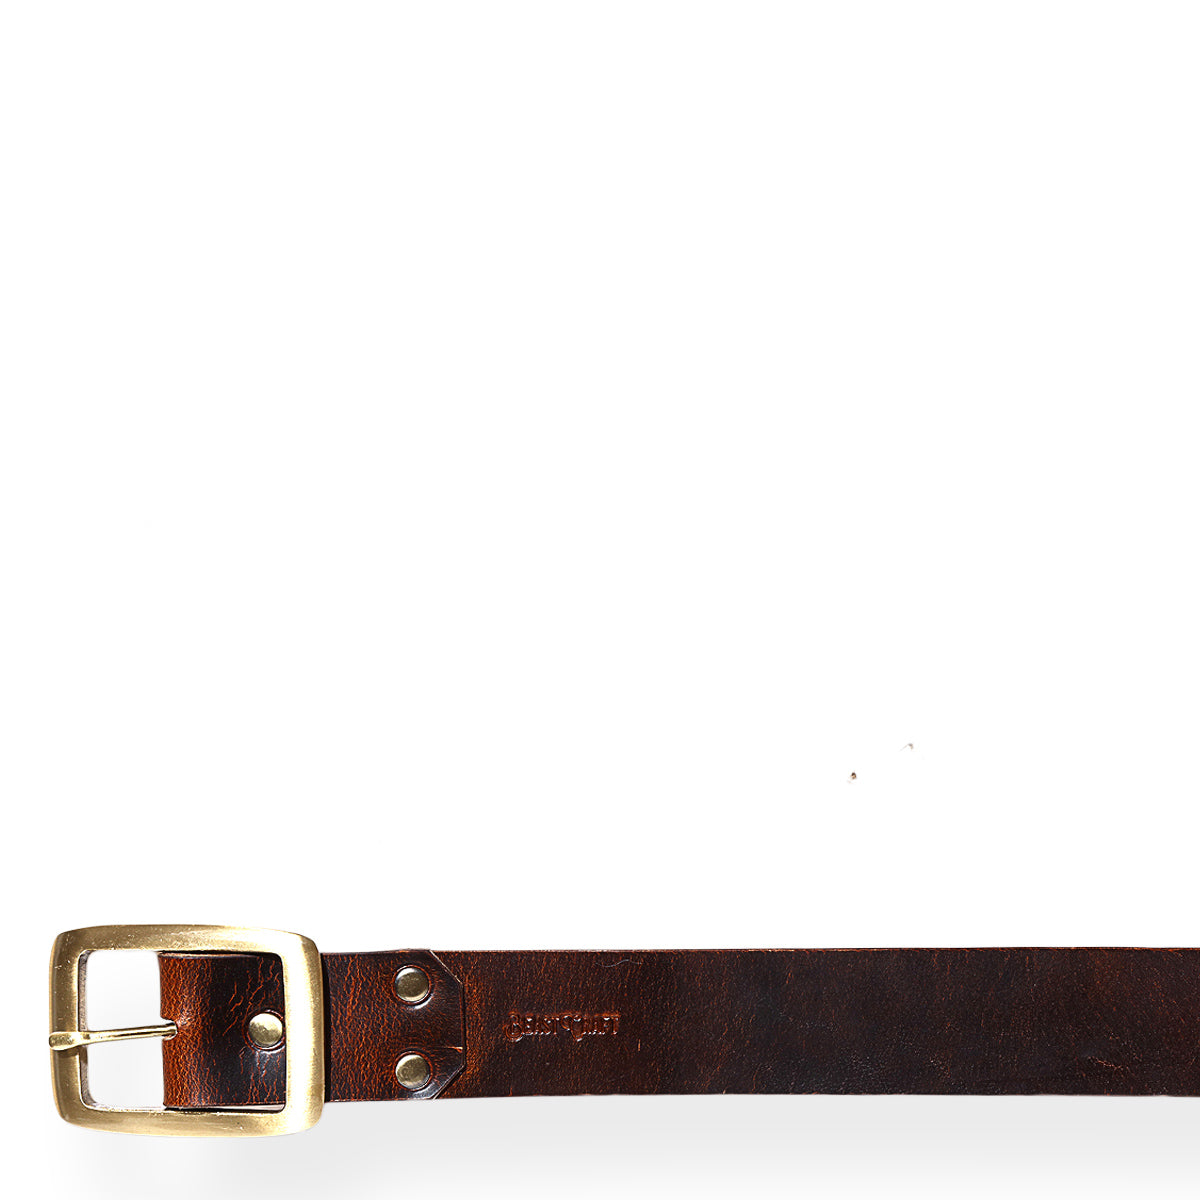 Vintage Distressed Leather Belt Black Brown Genuine Full Grain Leather Snap Belt, Gift for Him, Gift for Her, Handmade,Unisex,minimalist United States